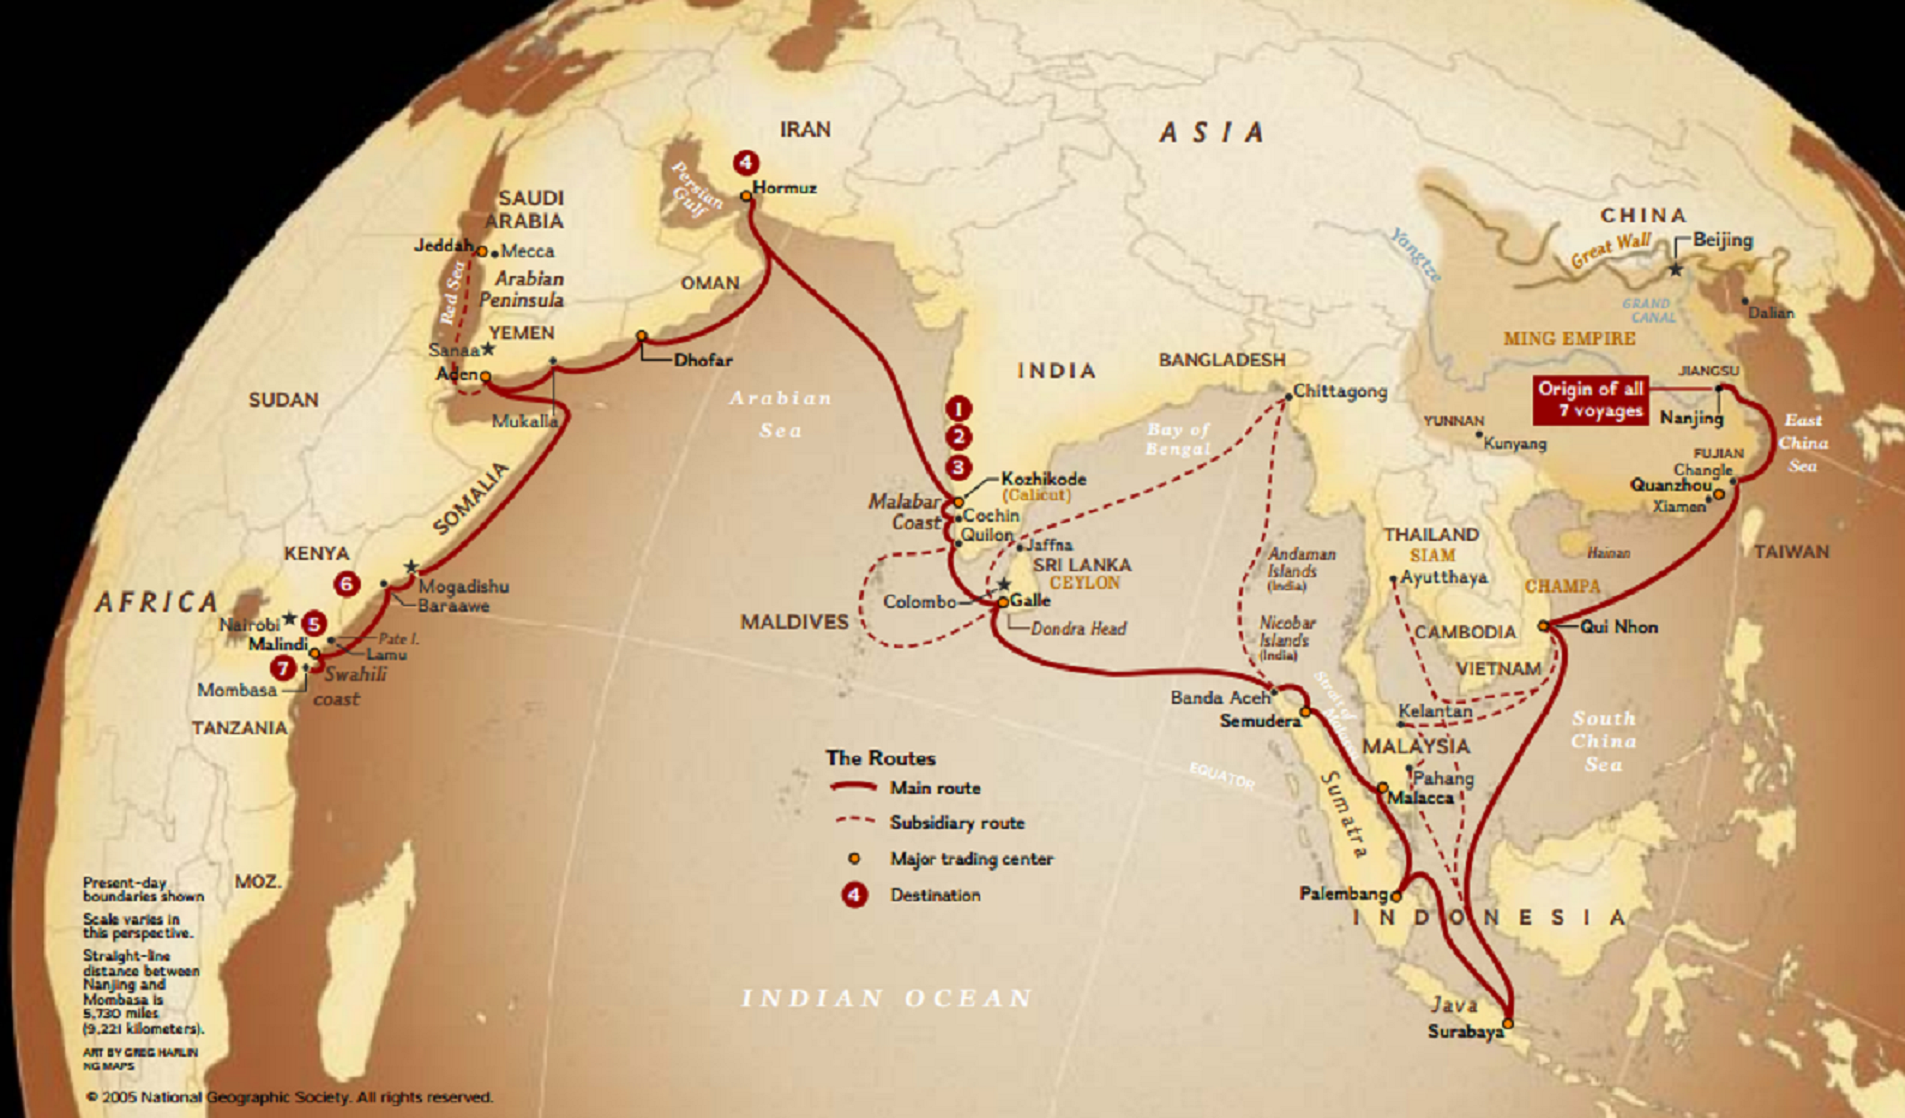 THE 21ST CENTURY MARITIME SILK ROAD #Report - FRONTIERE